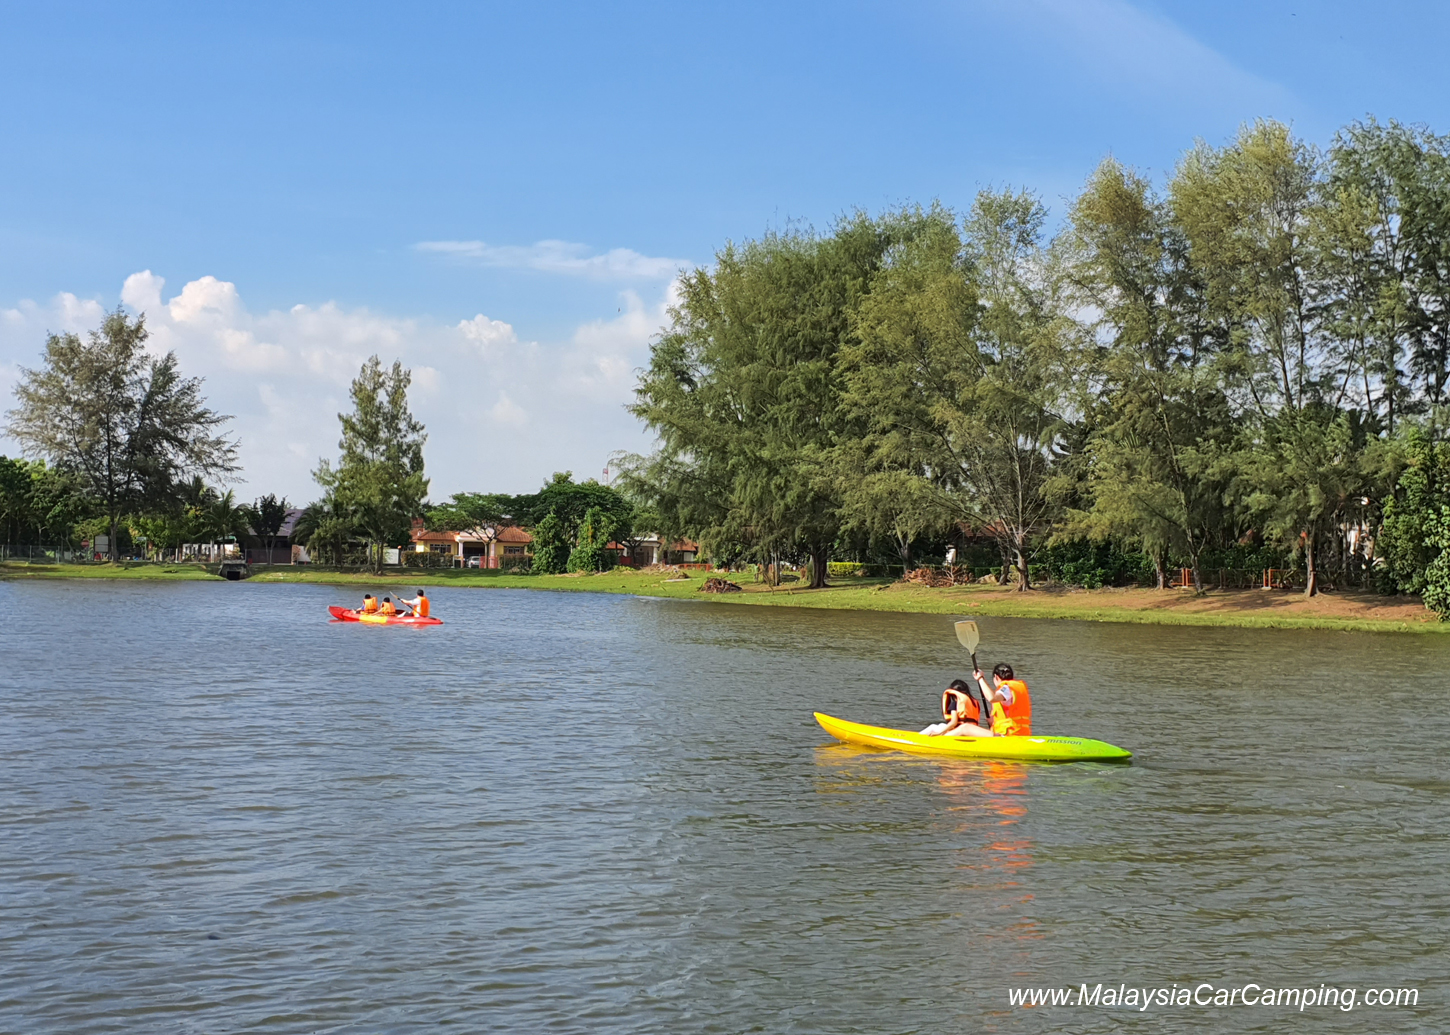 kayak_with_dogs_camping_with_dogs_puppy_lakeside_camping_malaysia_car_camping_malaysia_campsite-5